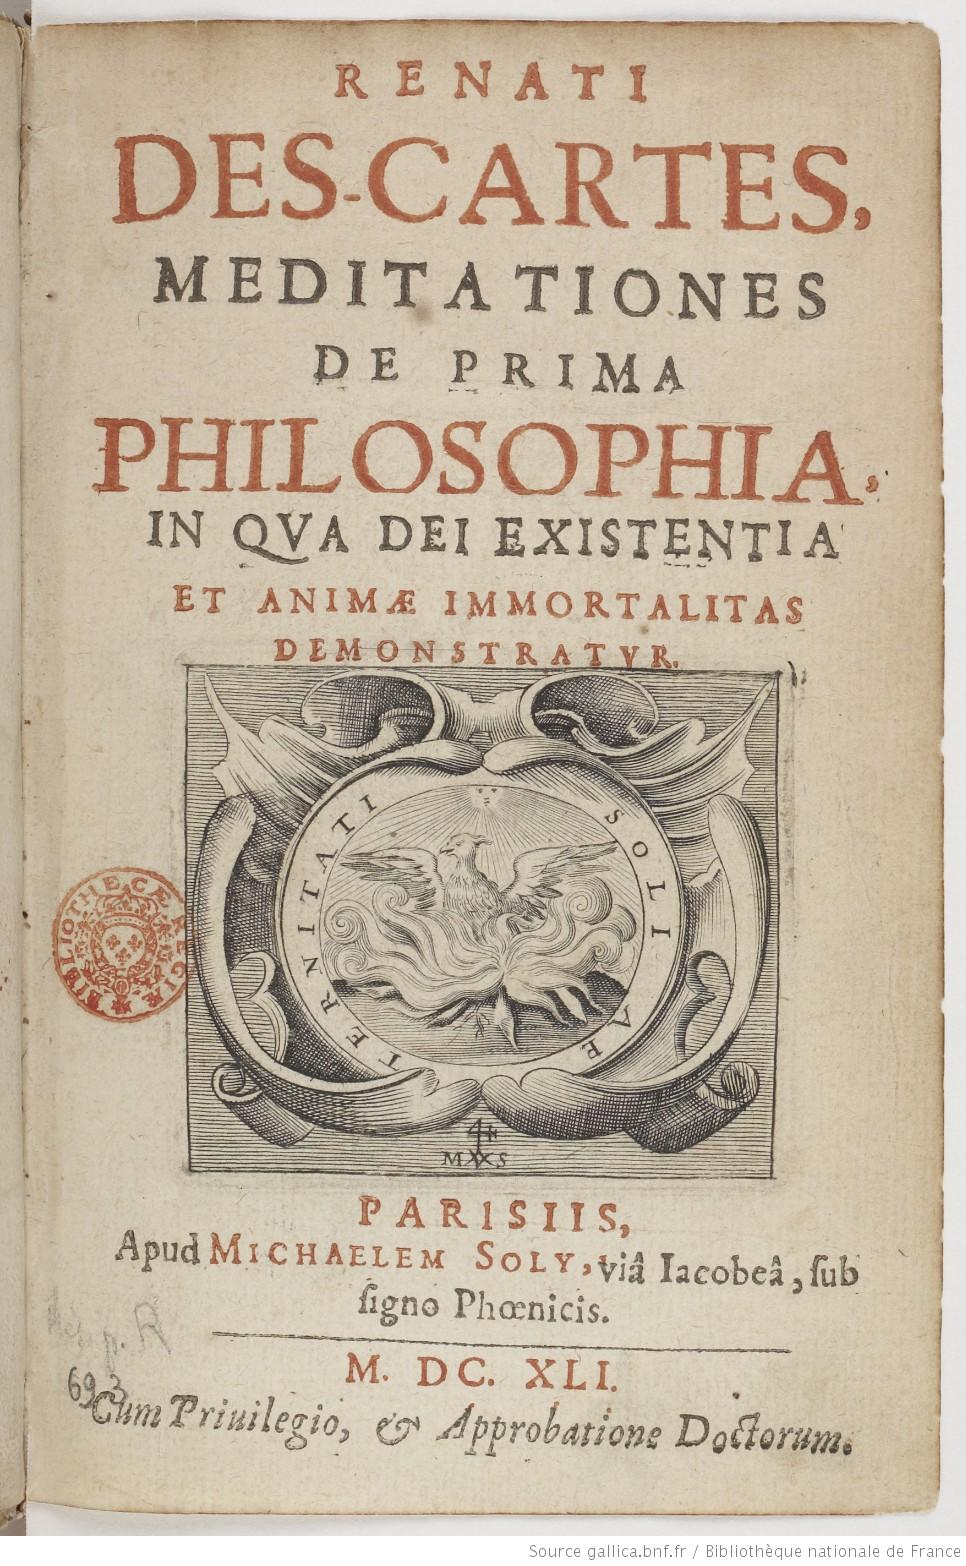 http://upload.wikimedia.org/wikipedia/commons/7/77/Meditationes_de_prima_philosophia_1641.jpg